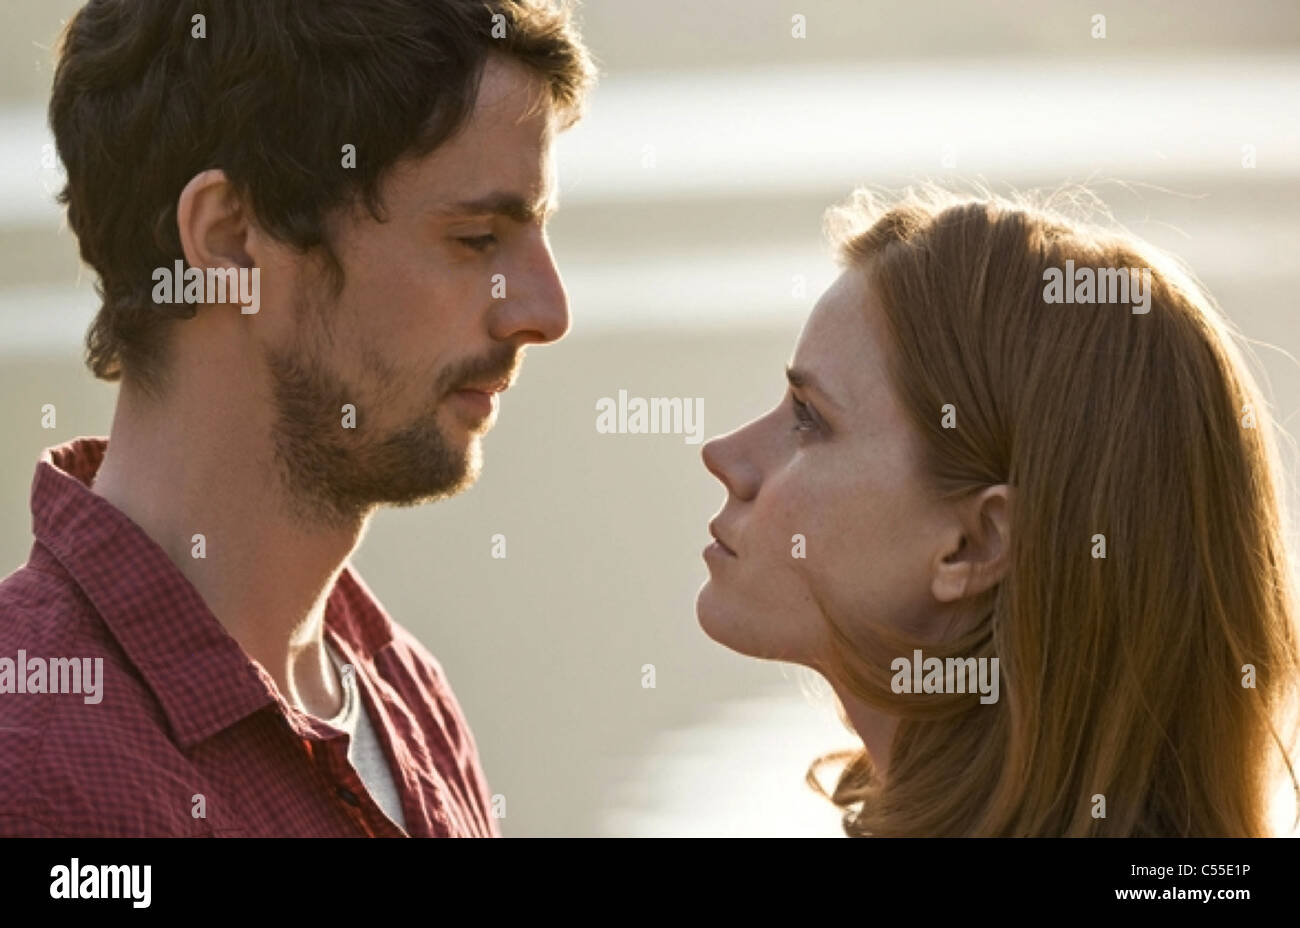 LEAP YEAR 2010 Universal film with Amy Adams and Matthew Goode - Stock Image